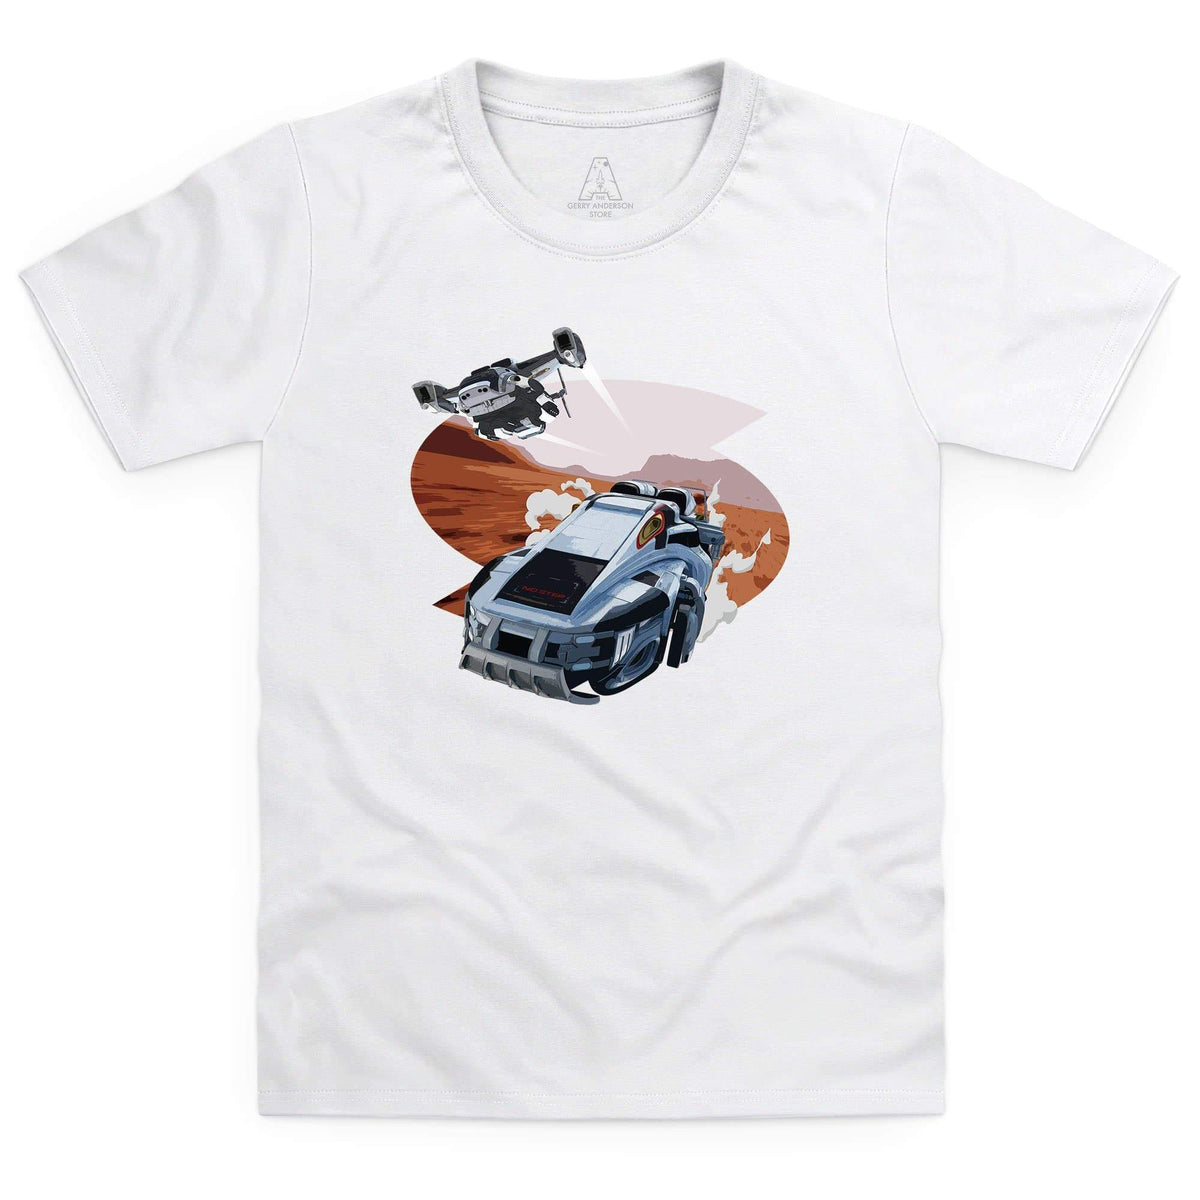 New Captain Scarlet Rhino Kid's White T-Shirt [Official & Exclusive] - The Gerry Anderson Store